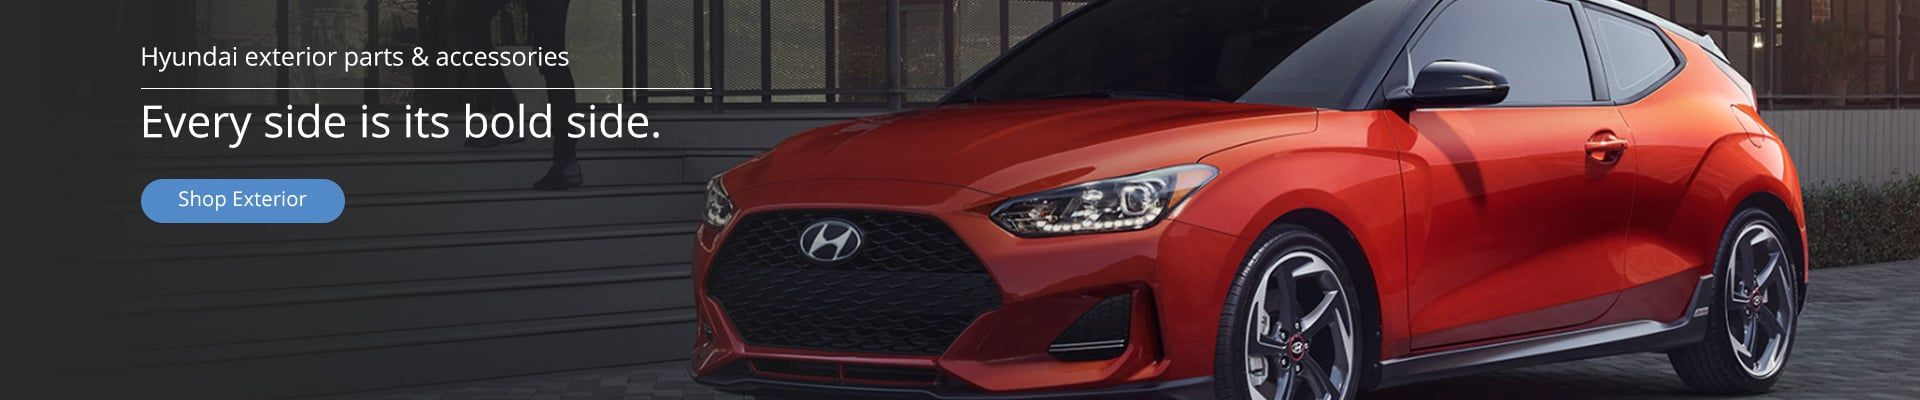 Hyundai Exterior Parts & Accessories